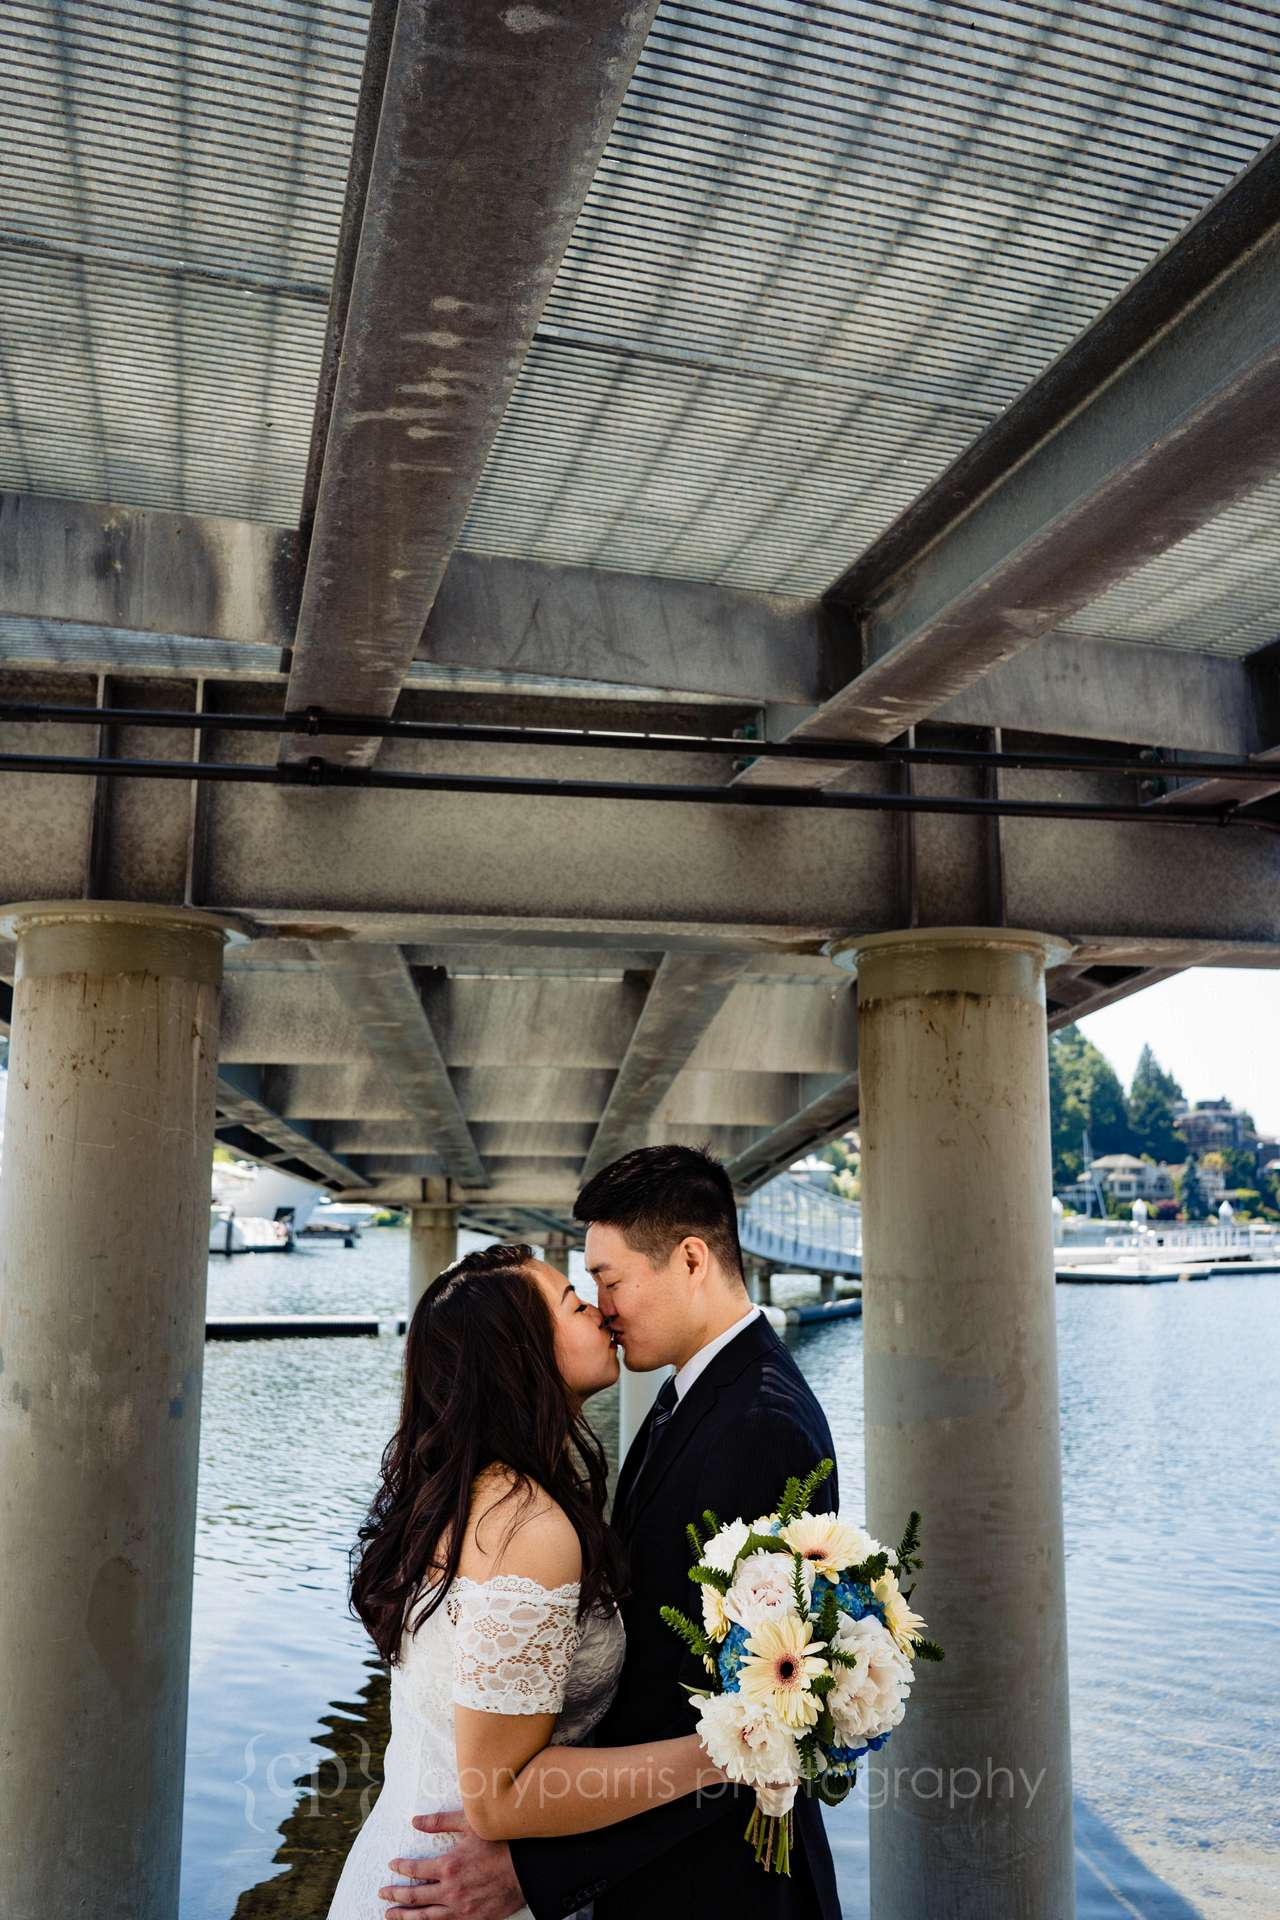 086-Seattle-Elopement-Courthouse.jpg